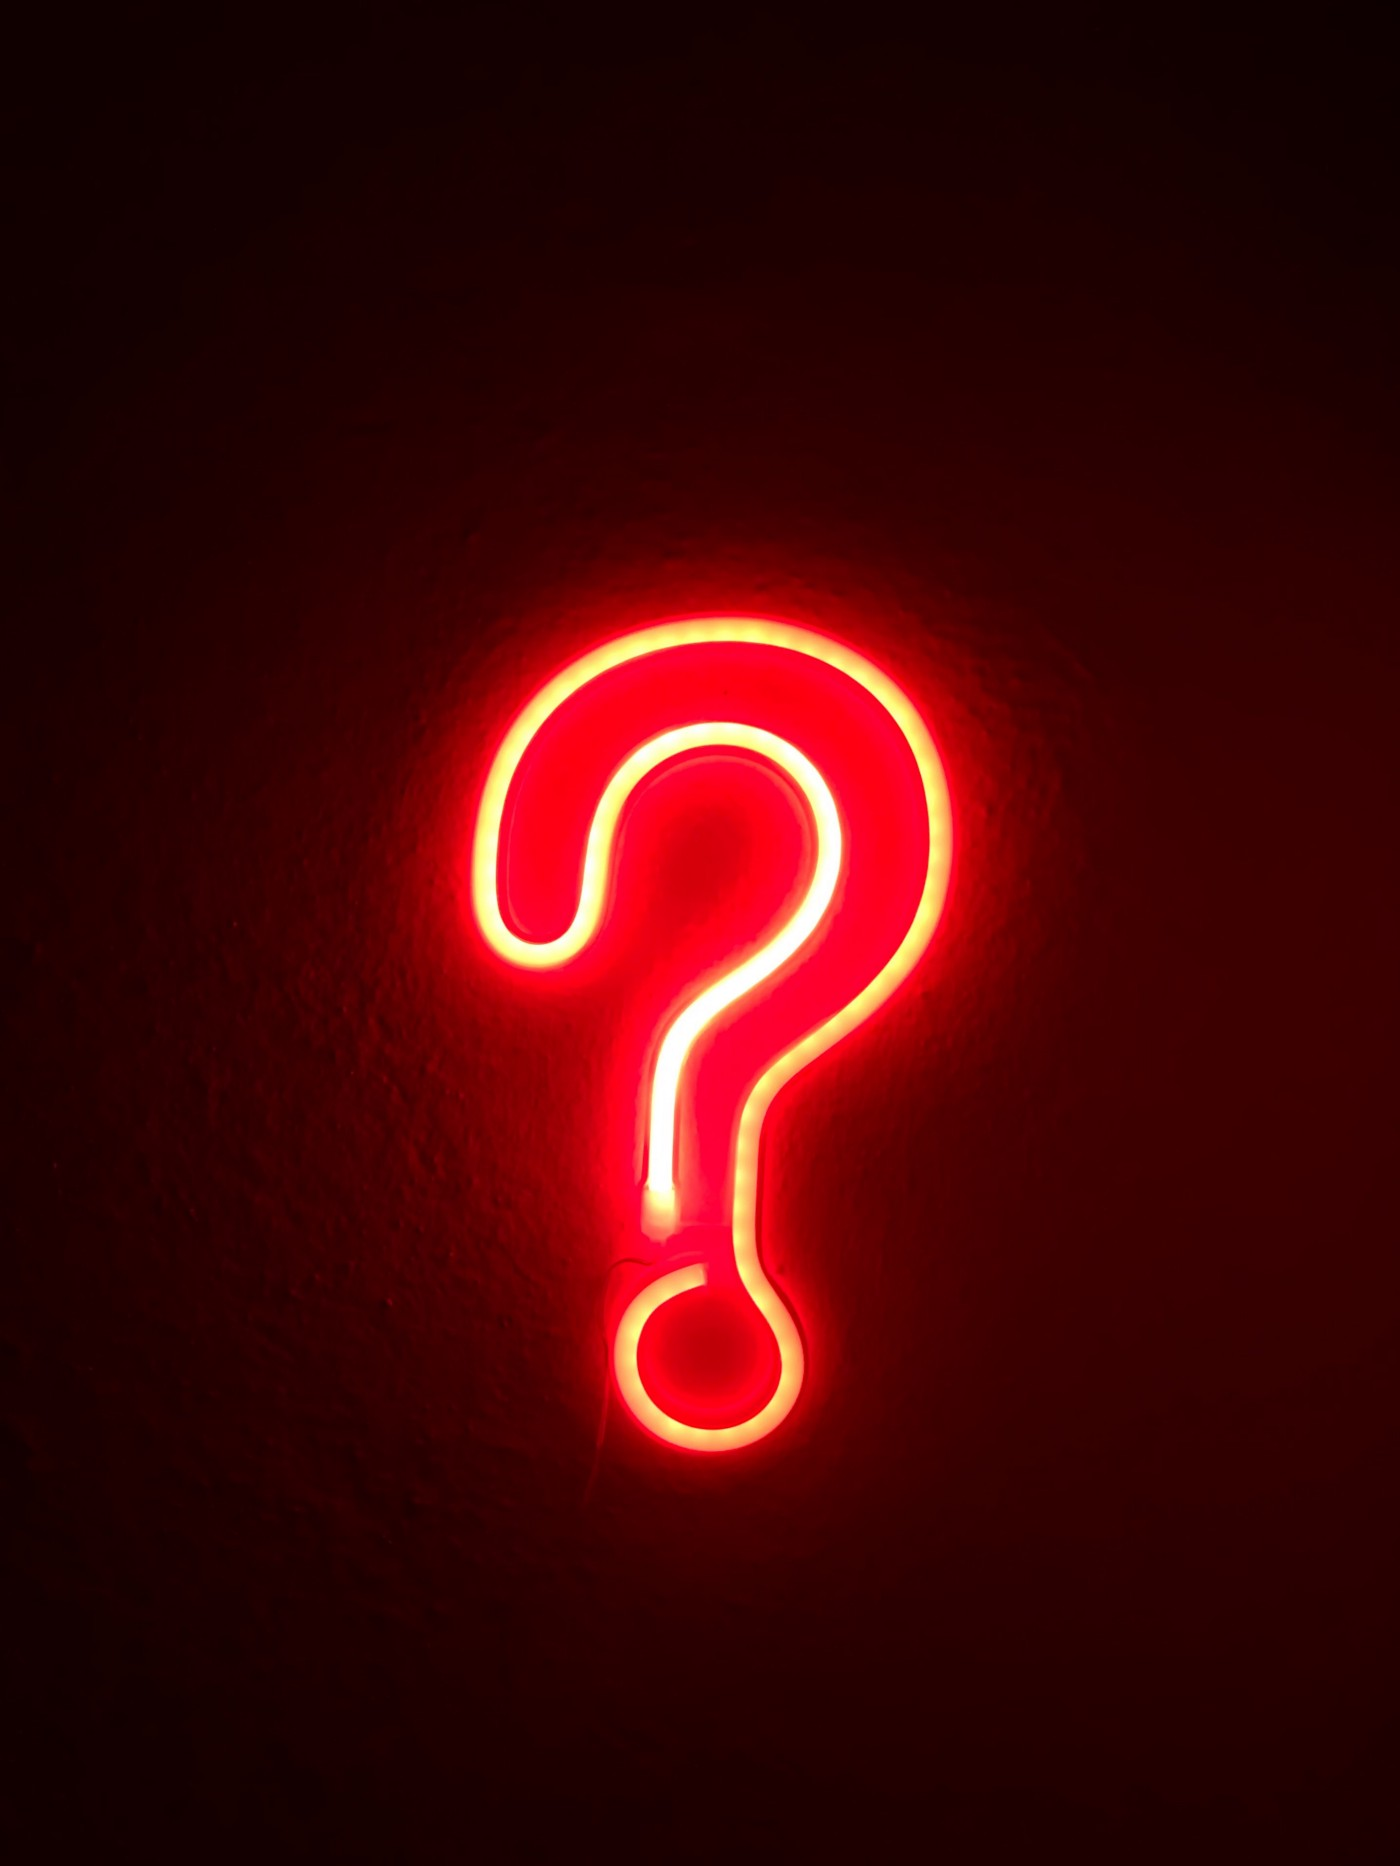 Neon question mark sign on black background